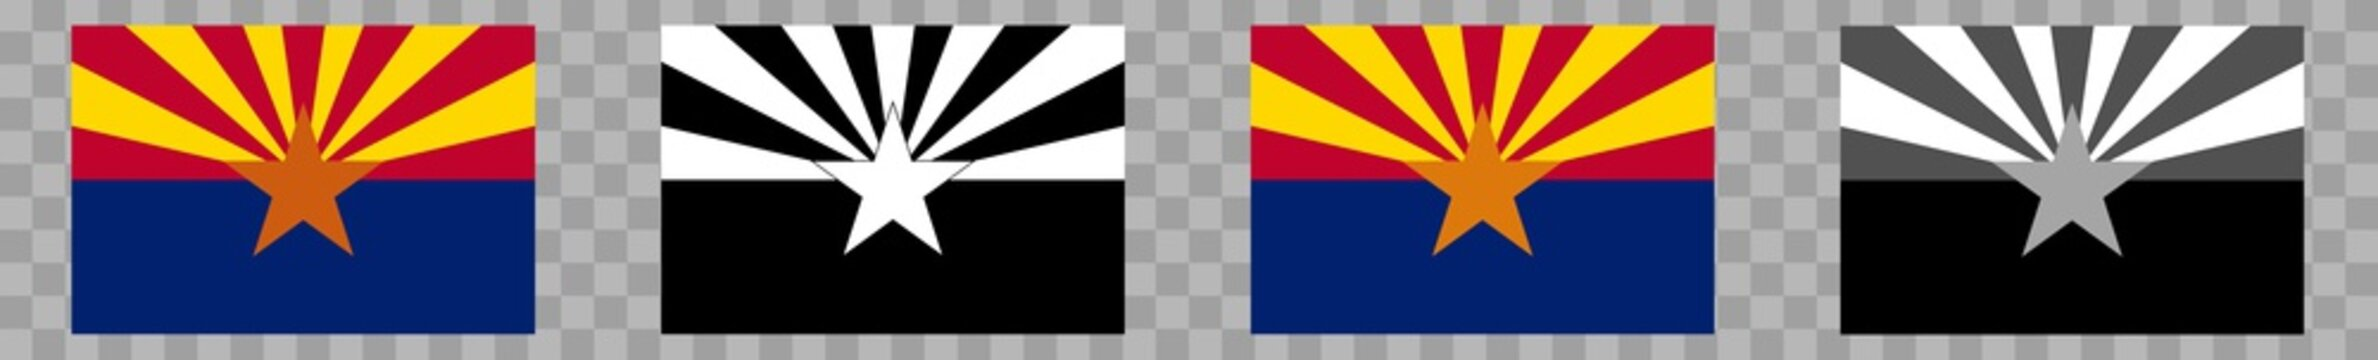 Arizona Flag Colors Black | State Flags | Banner | Symbol | Vector | Isolated | Variations